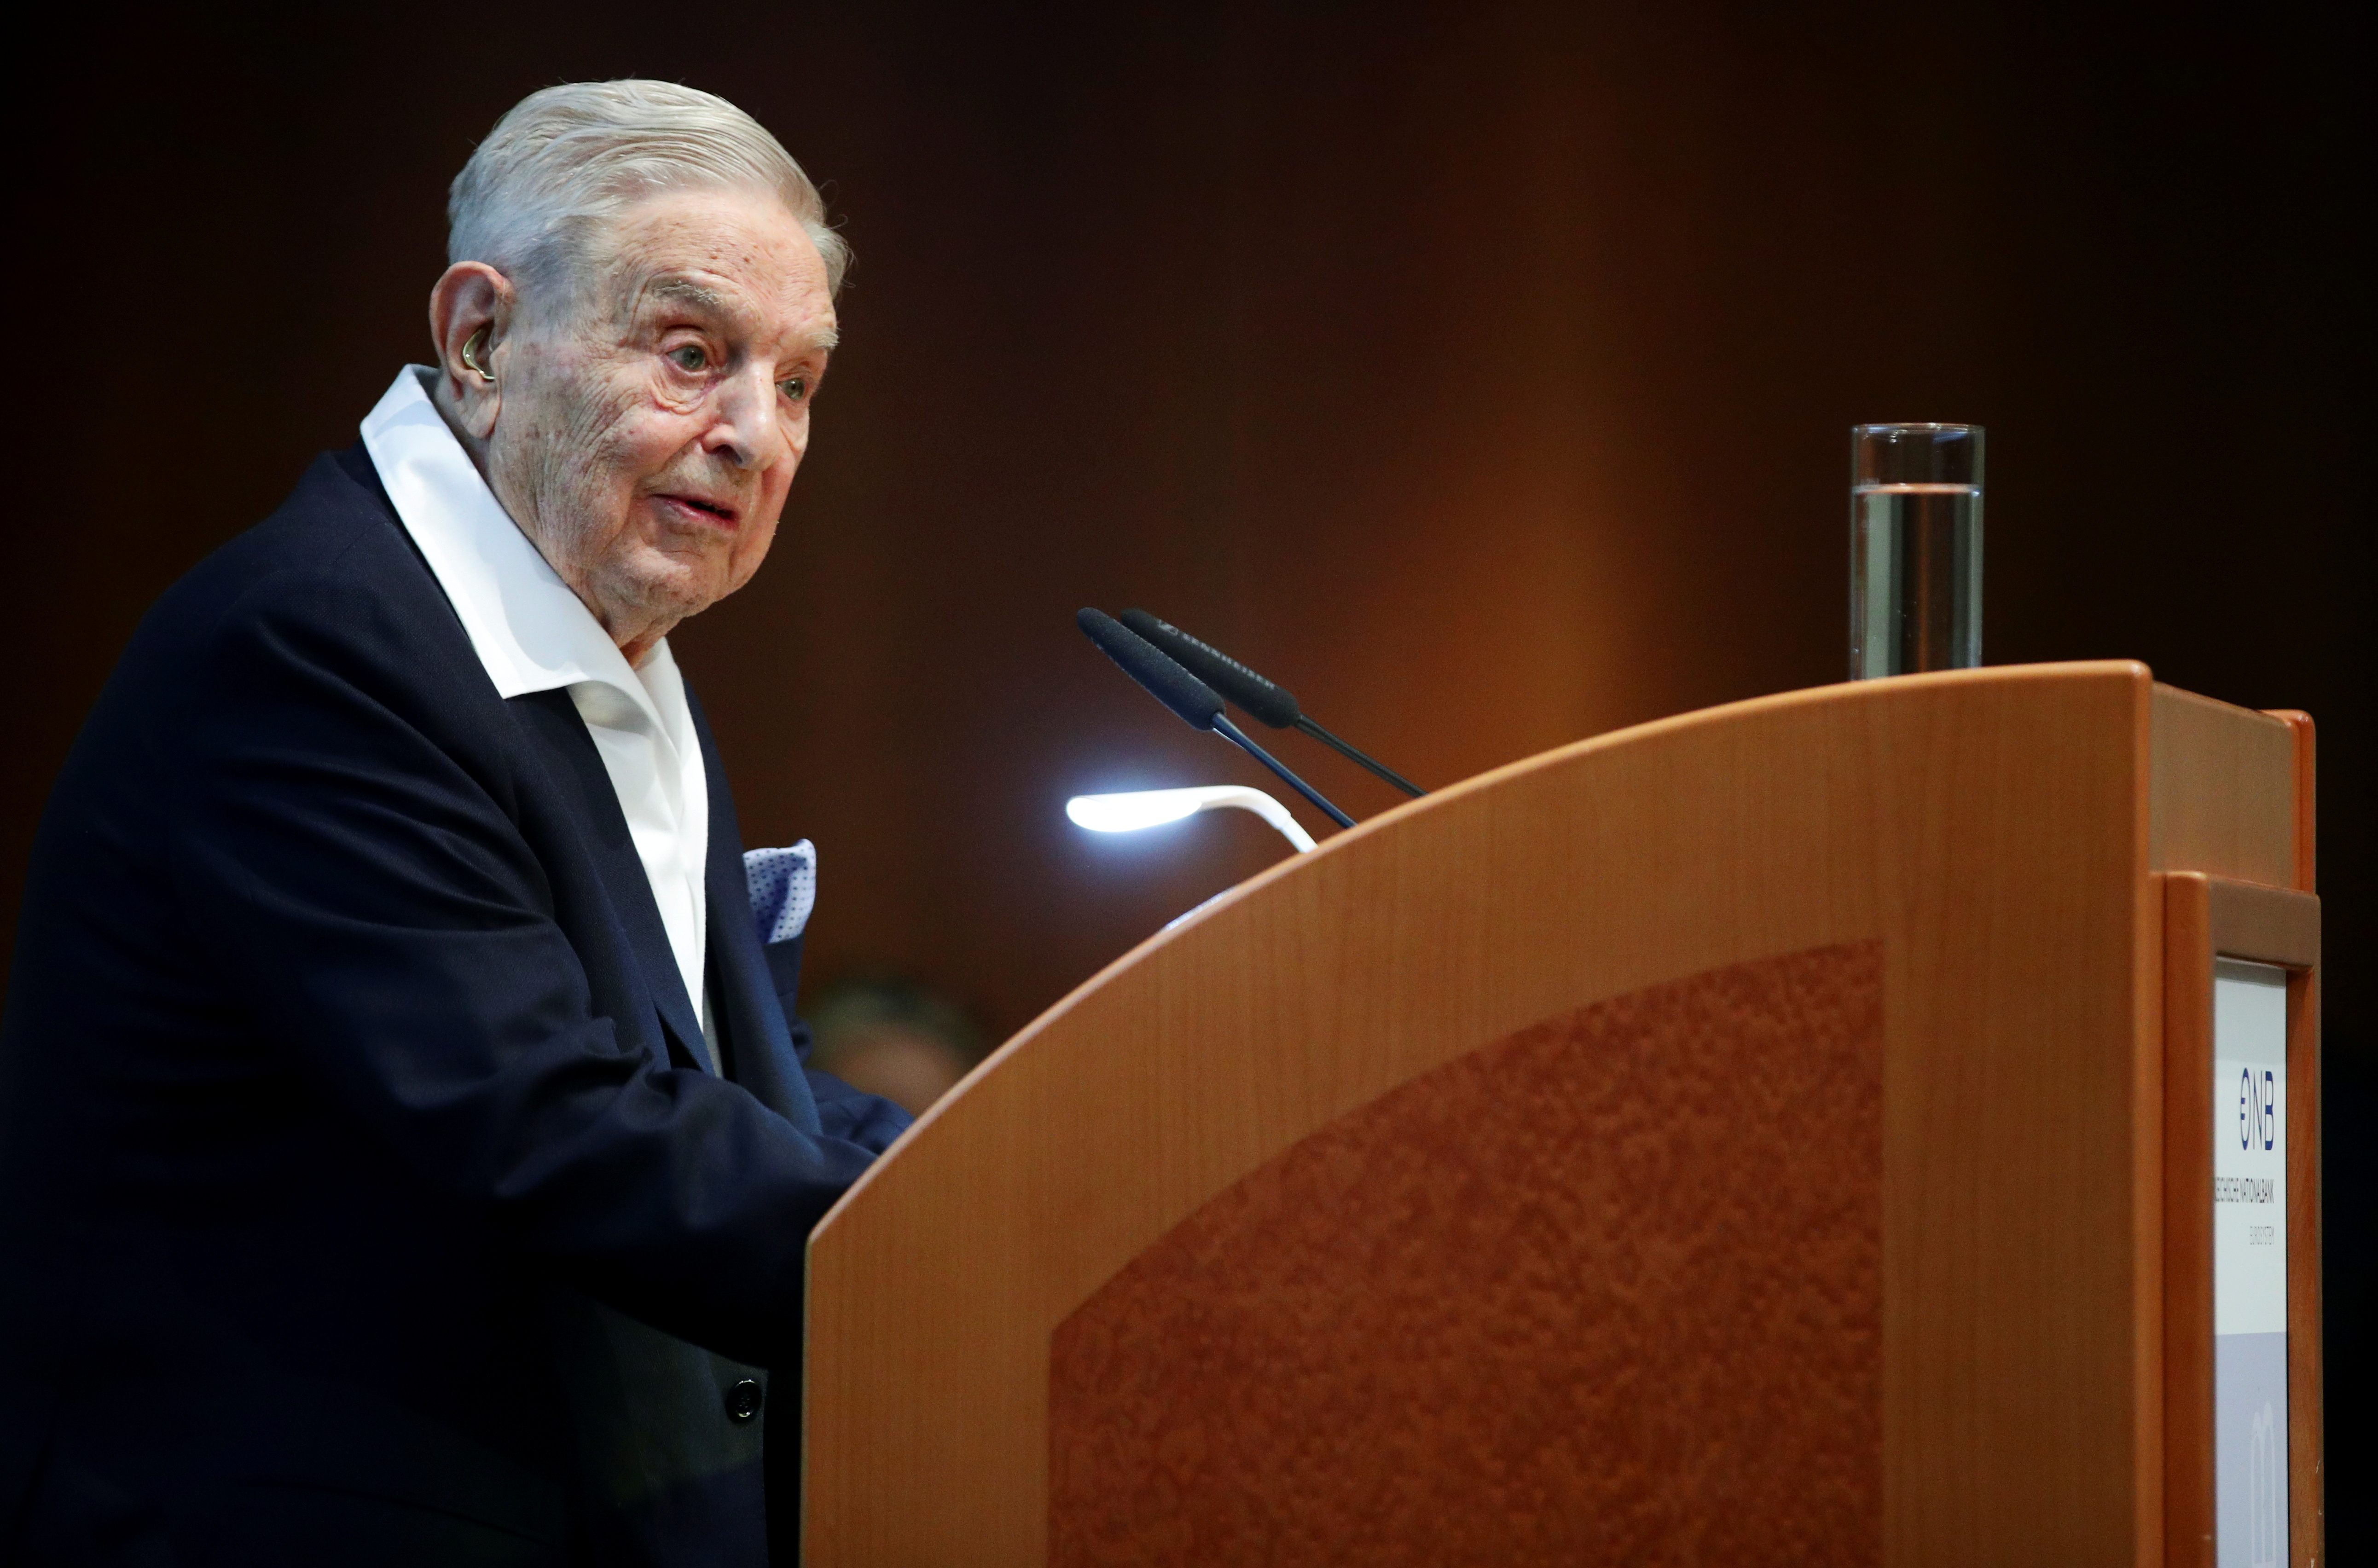 FILE PHOTO: Billionaire investor George Soros speaks to the audience at the Schumpeter Award in Vienna, Austria June 21, 2019. REUTERS/Lisi Niesner/File Photo/File Photo